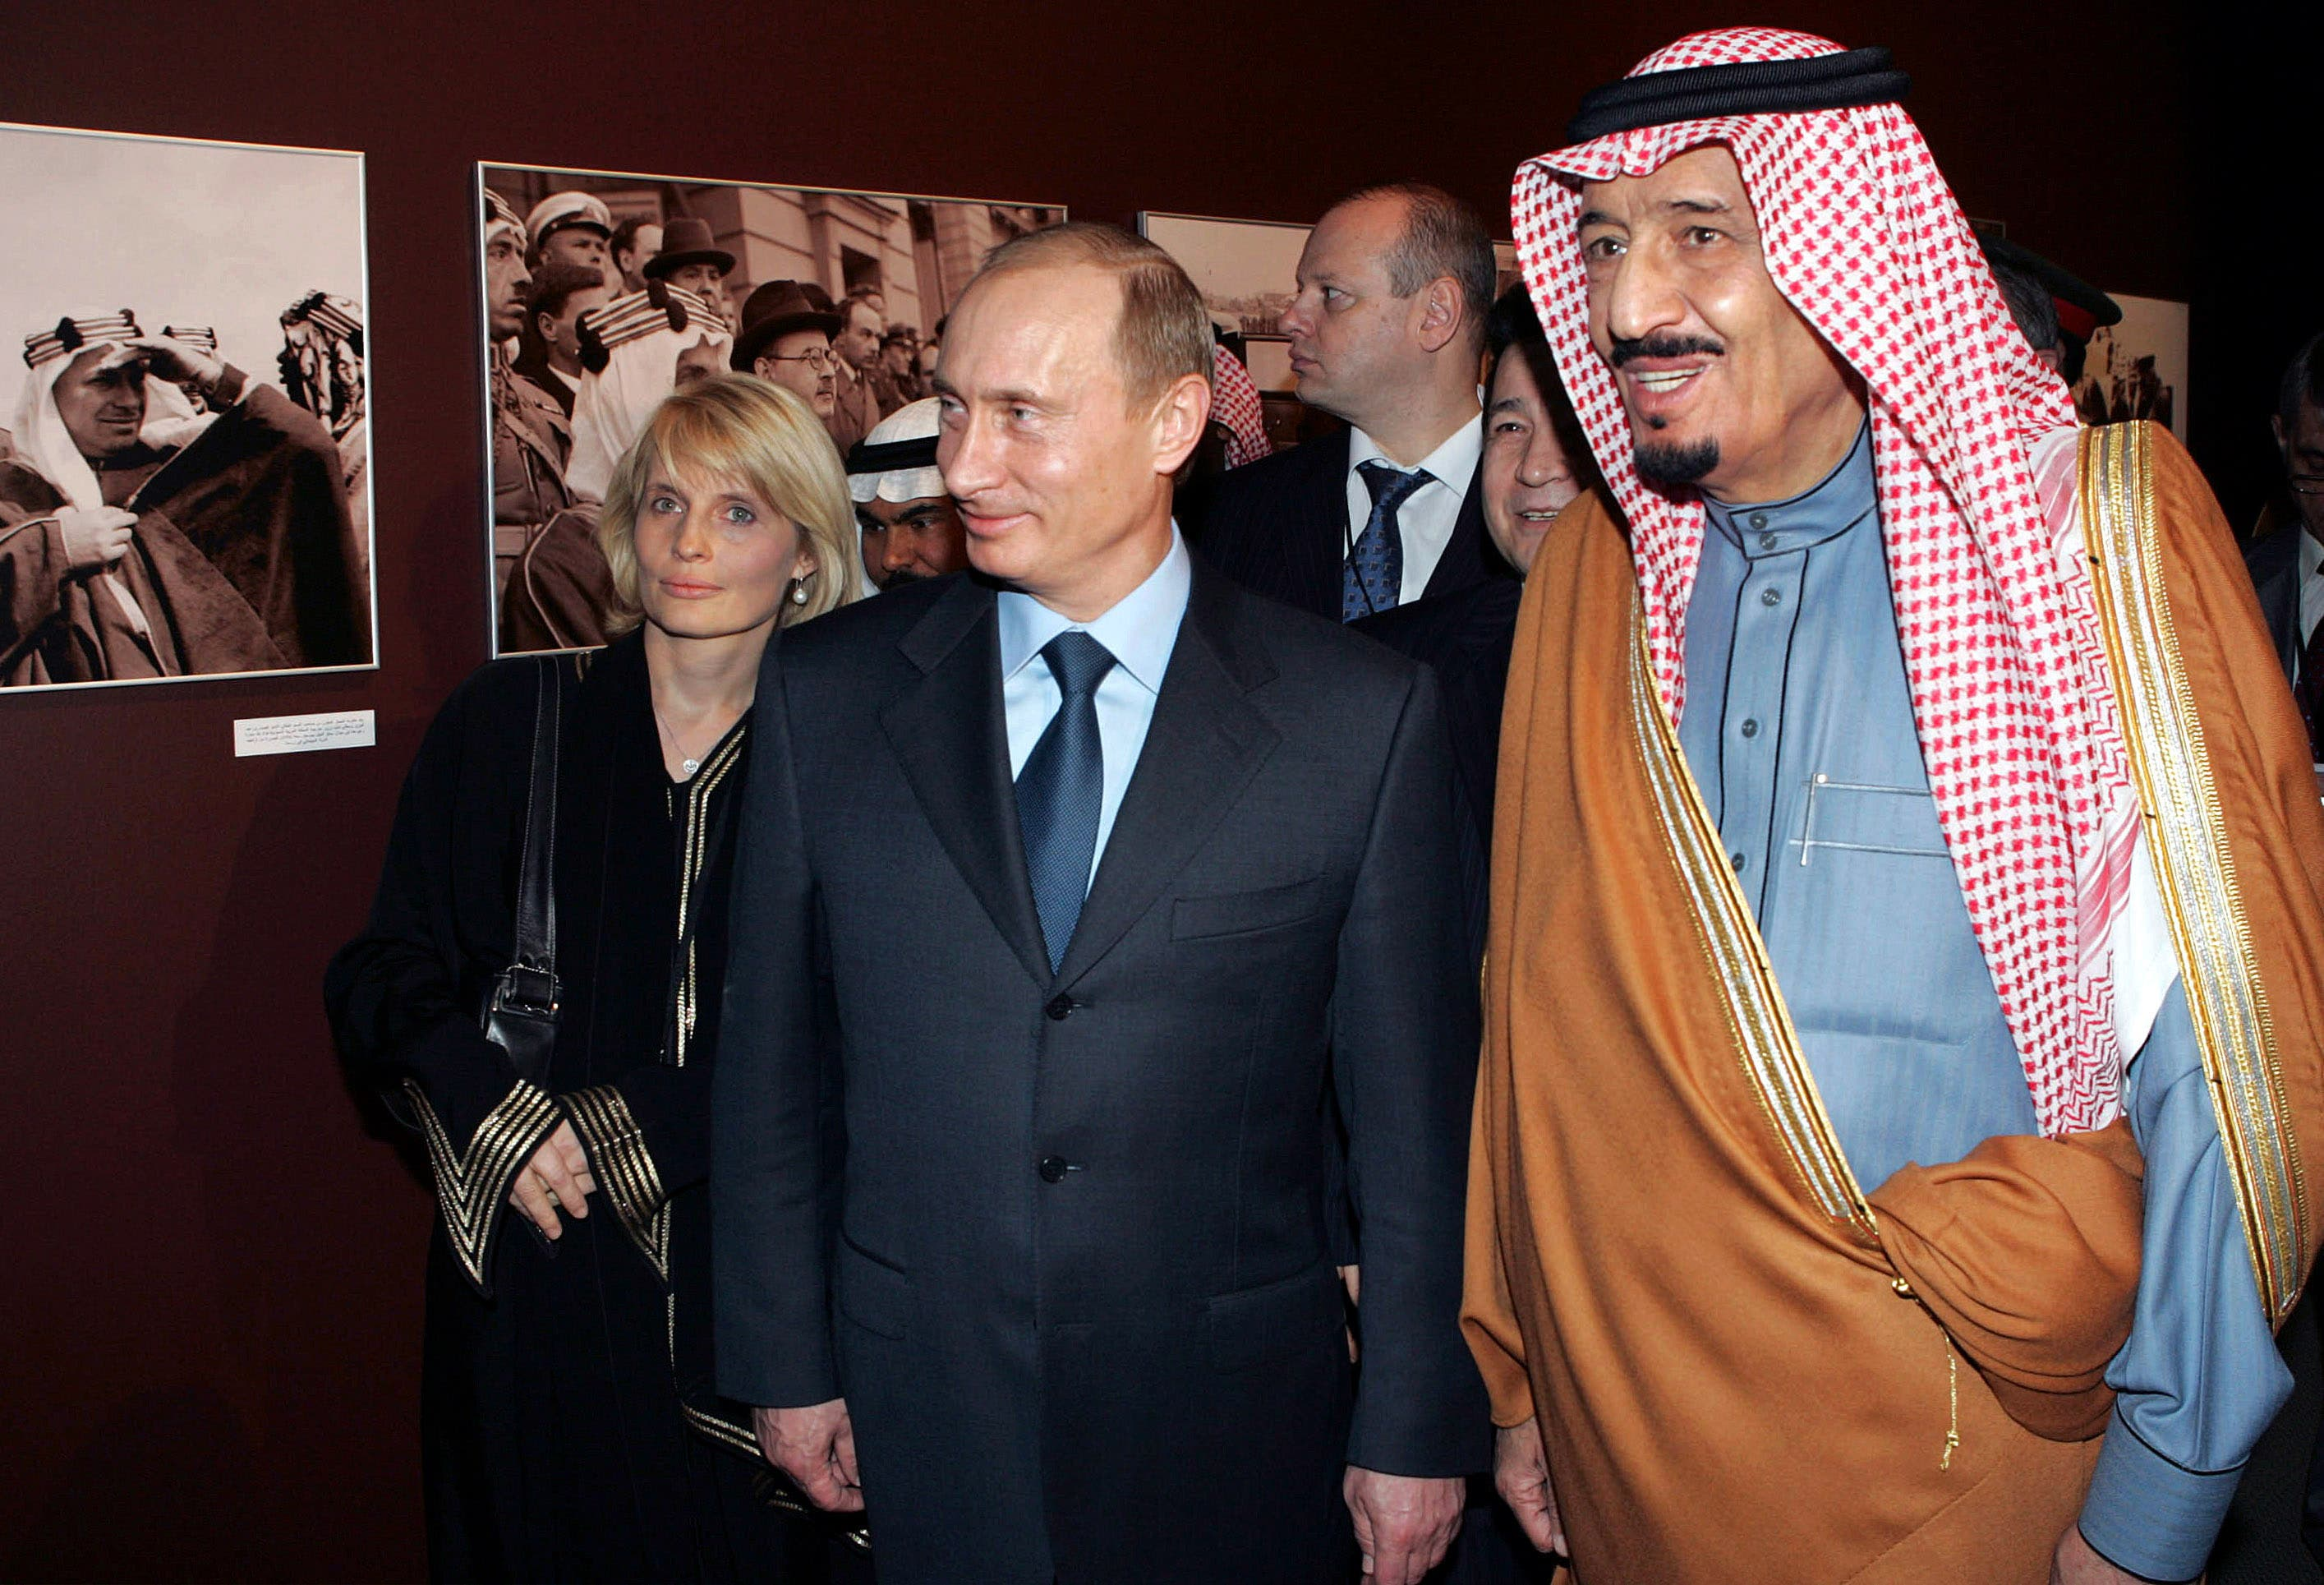 From right, Prince Salman bin Abdul Aziz, Saudi King's brother and Riyadh Governor, visiting Russian President Vladimir Putin and RIA Novosti News Agency Editor-in-Chief Svetlana Mironyuk tour a photo exhibition in Riyadh, Saudi Arabia, Monday, Feb. 12, 2007.